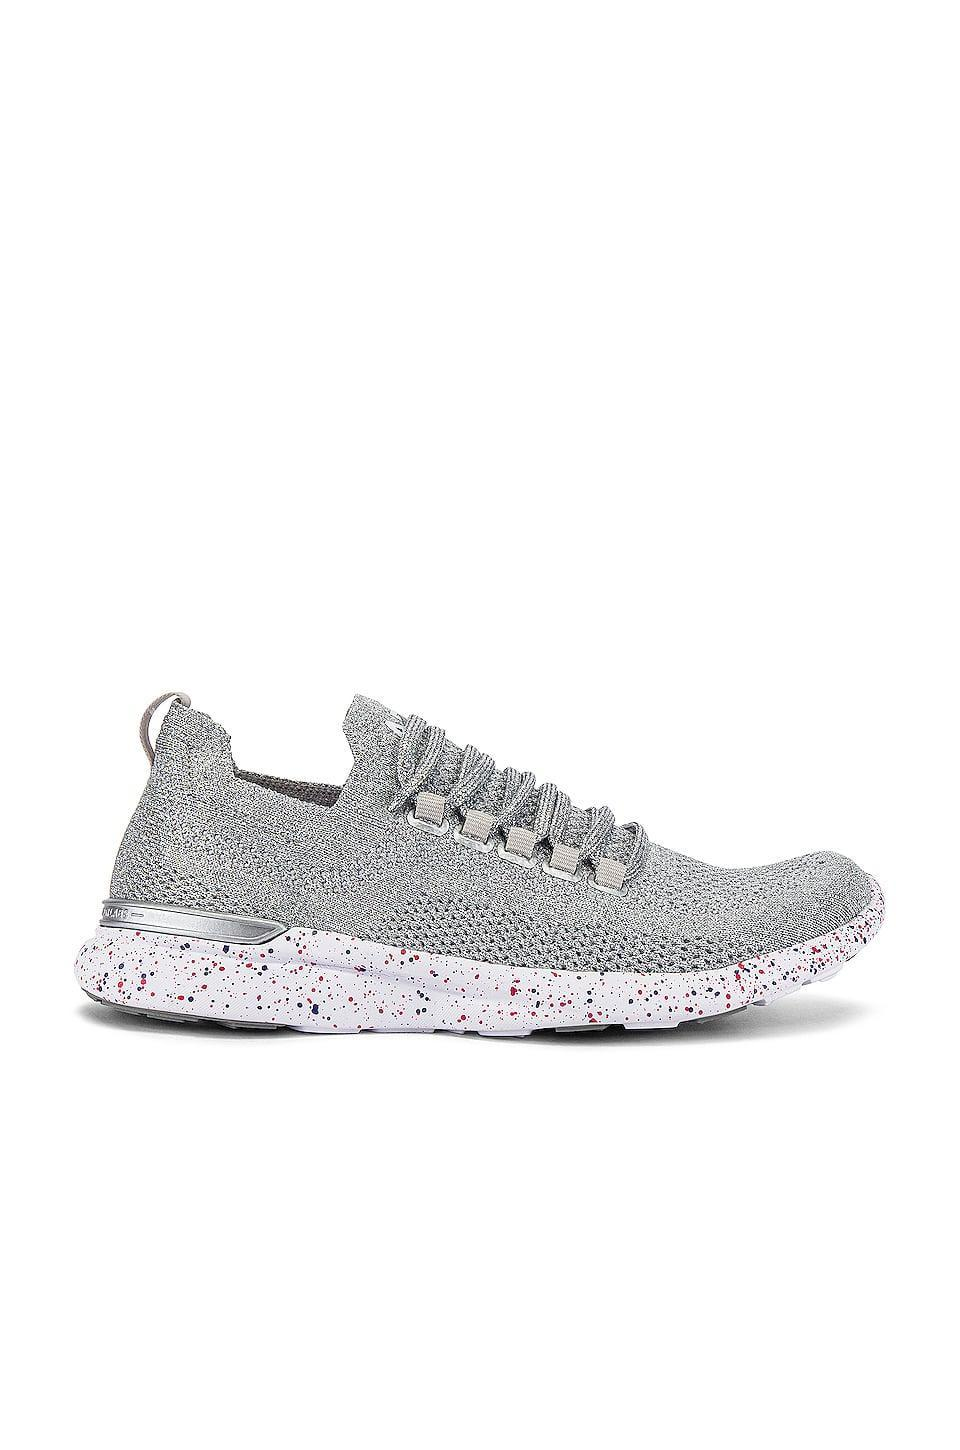 <p>These <span>APL TechLoom Breeze Sneakers</span> ($220) are some of the best looking workout sneakers we've seen.</p>